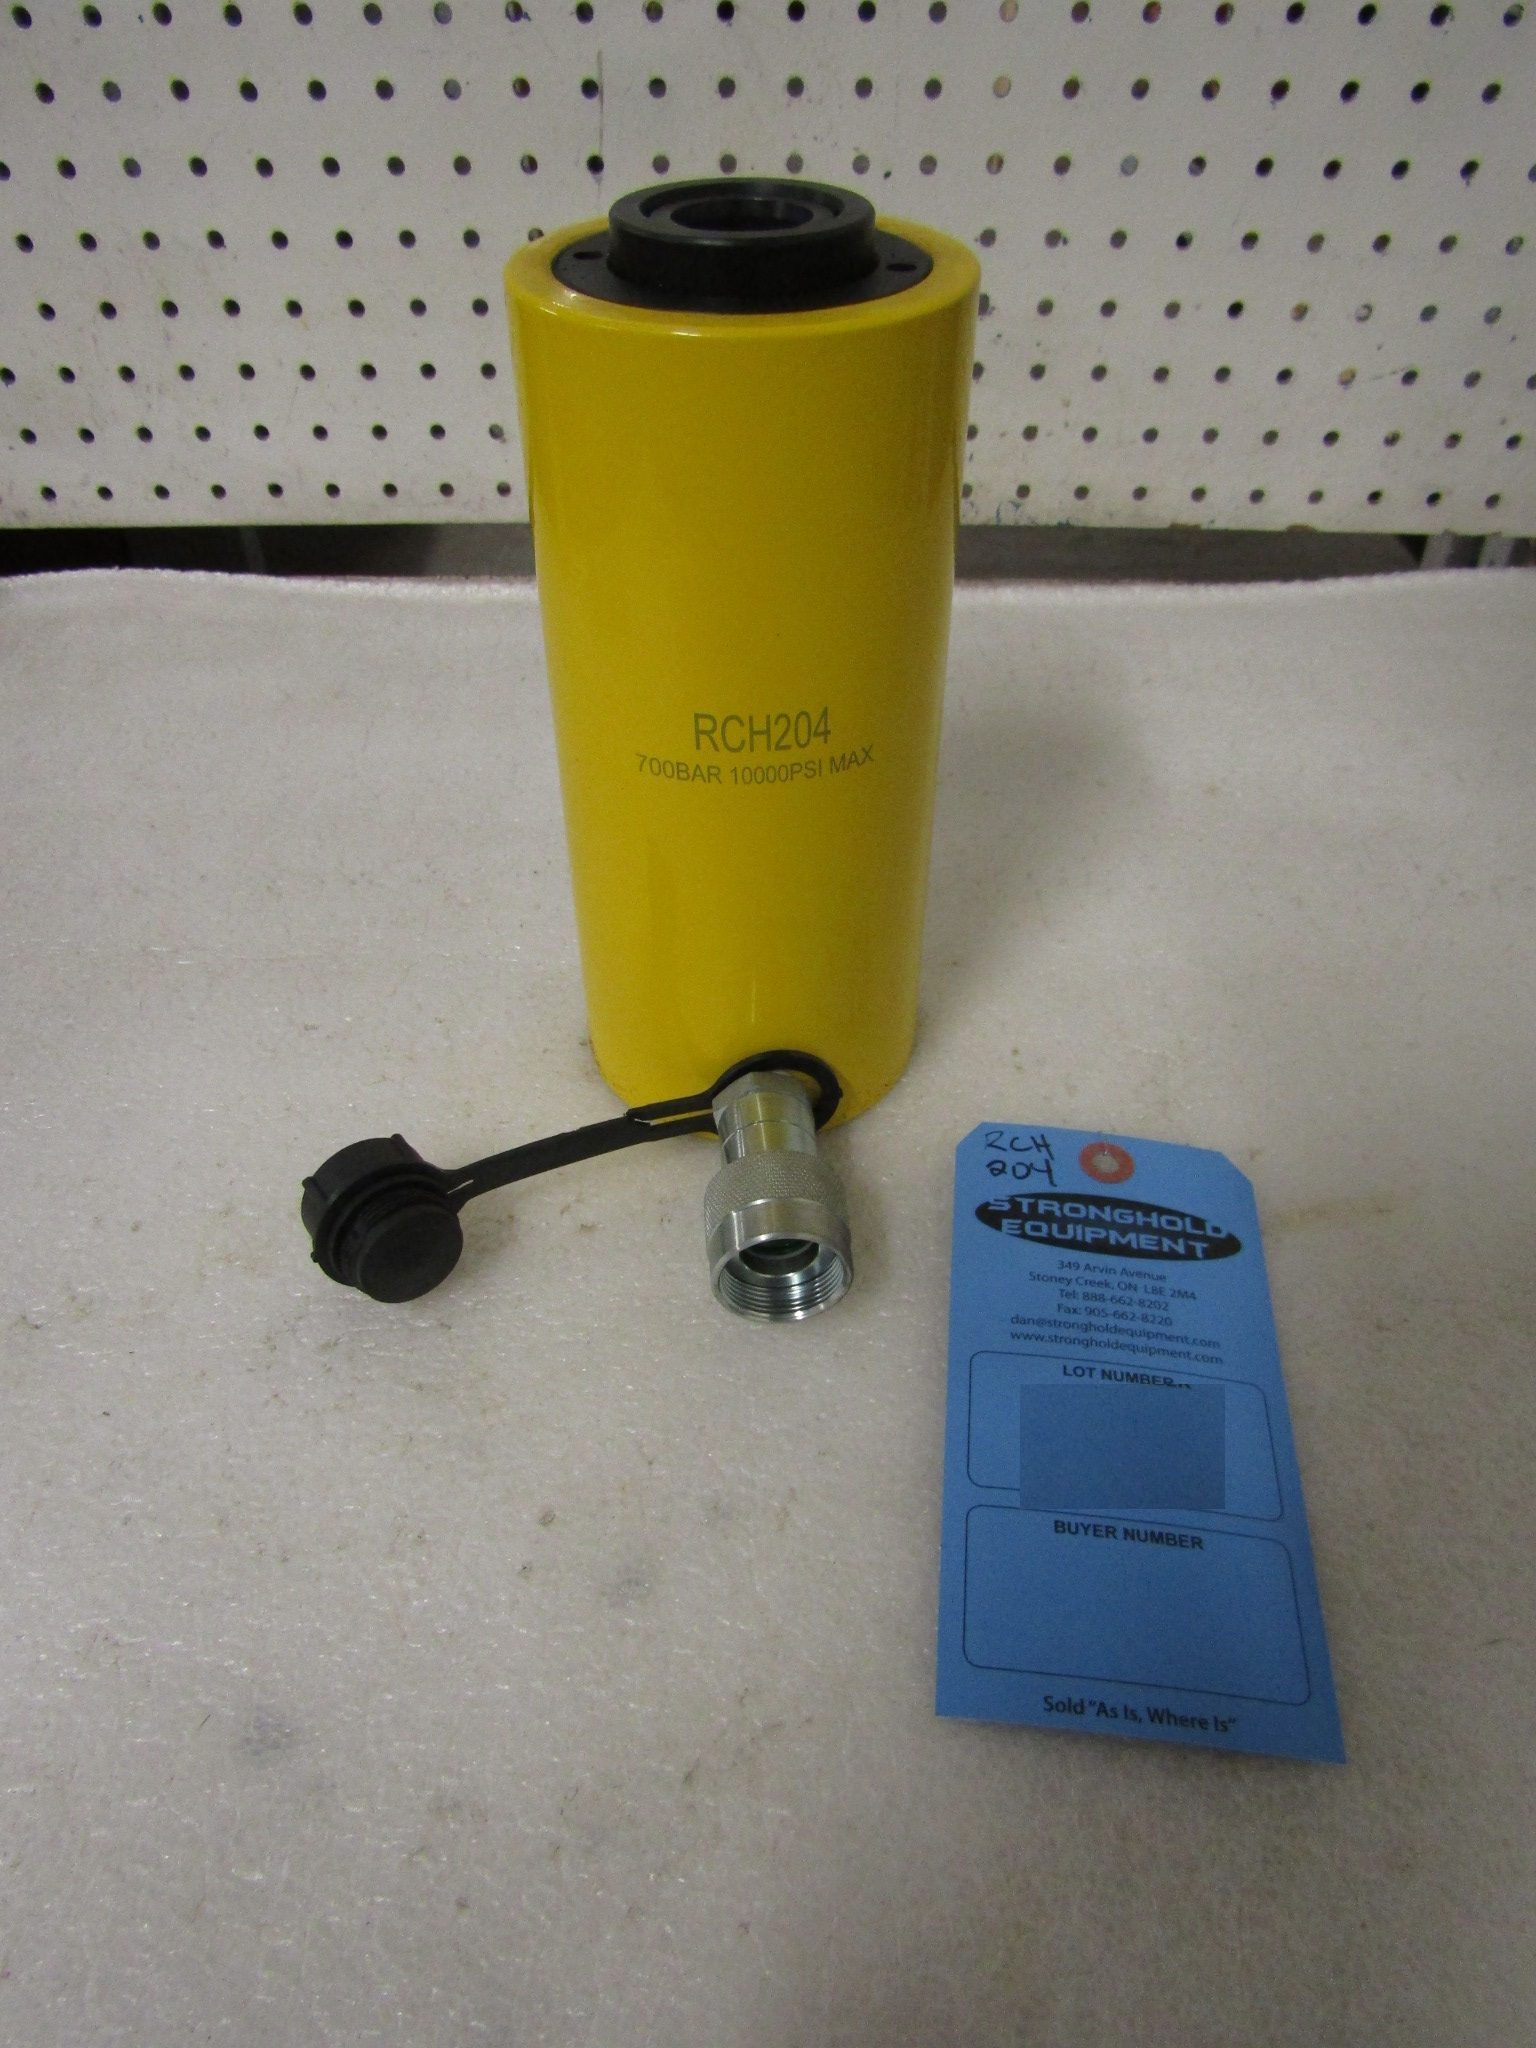 """RCH-204 MINT Hole Jack - 20 ton Hollow Hydraulic Jack with 4"""" stroke - hole through type cylinder"""